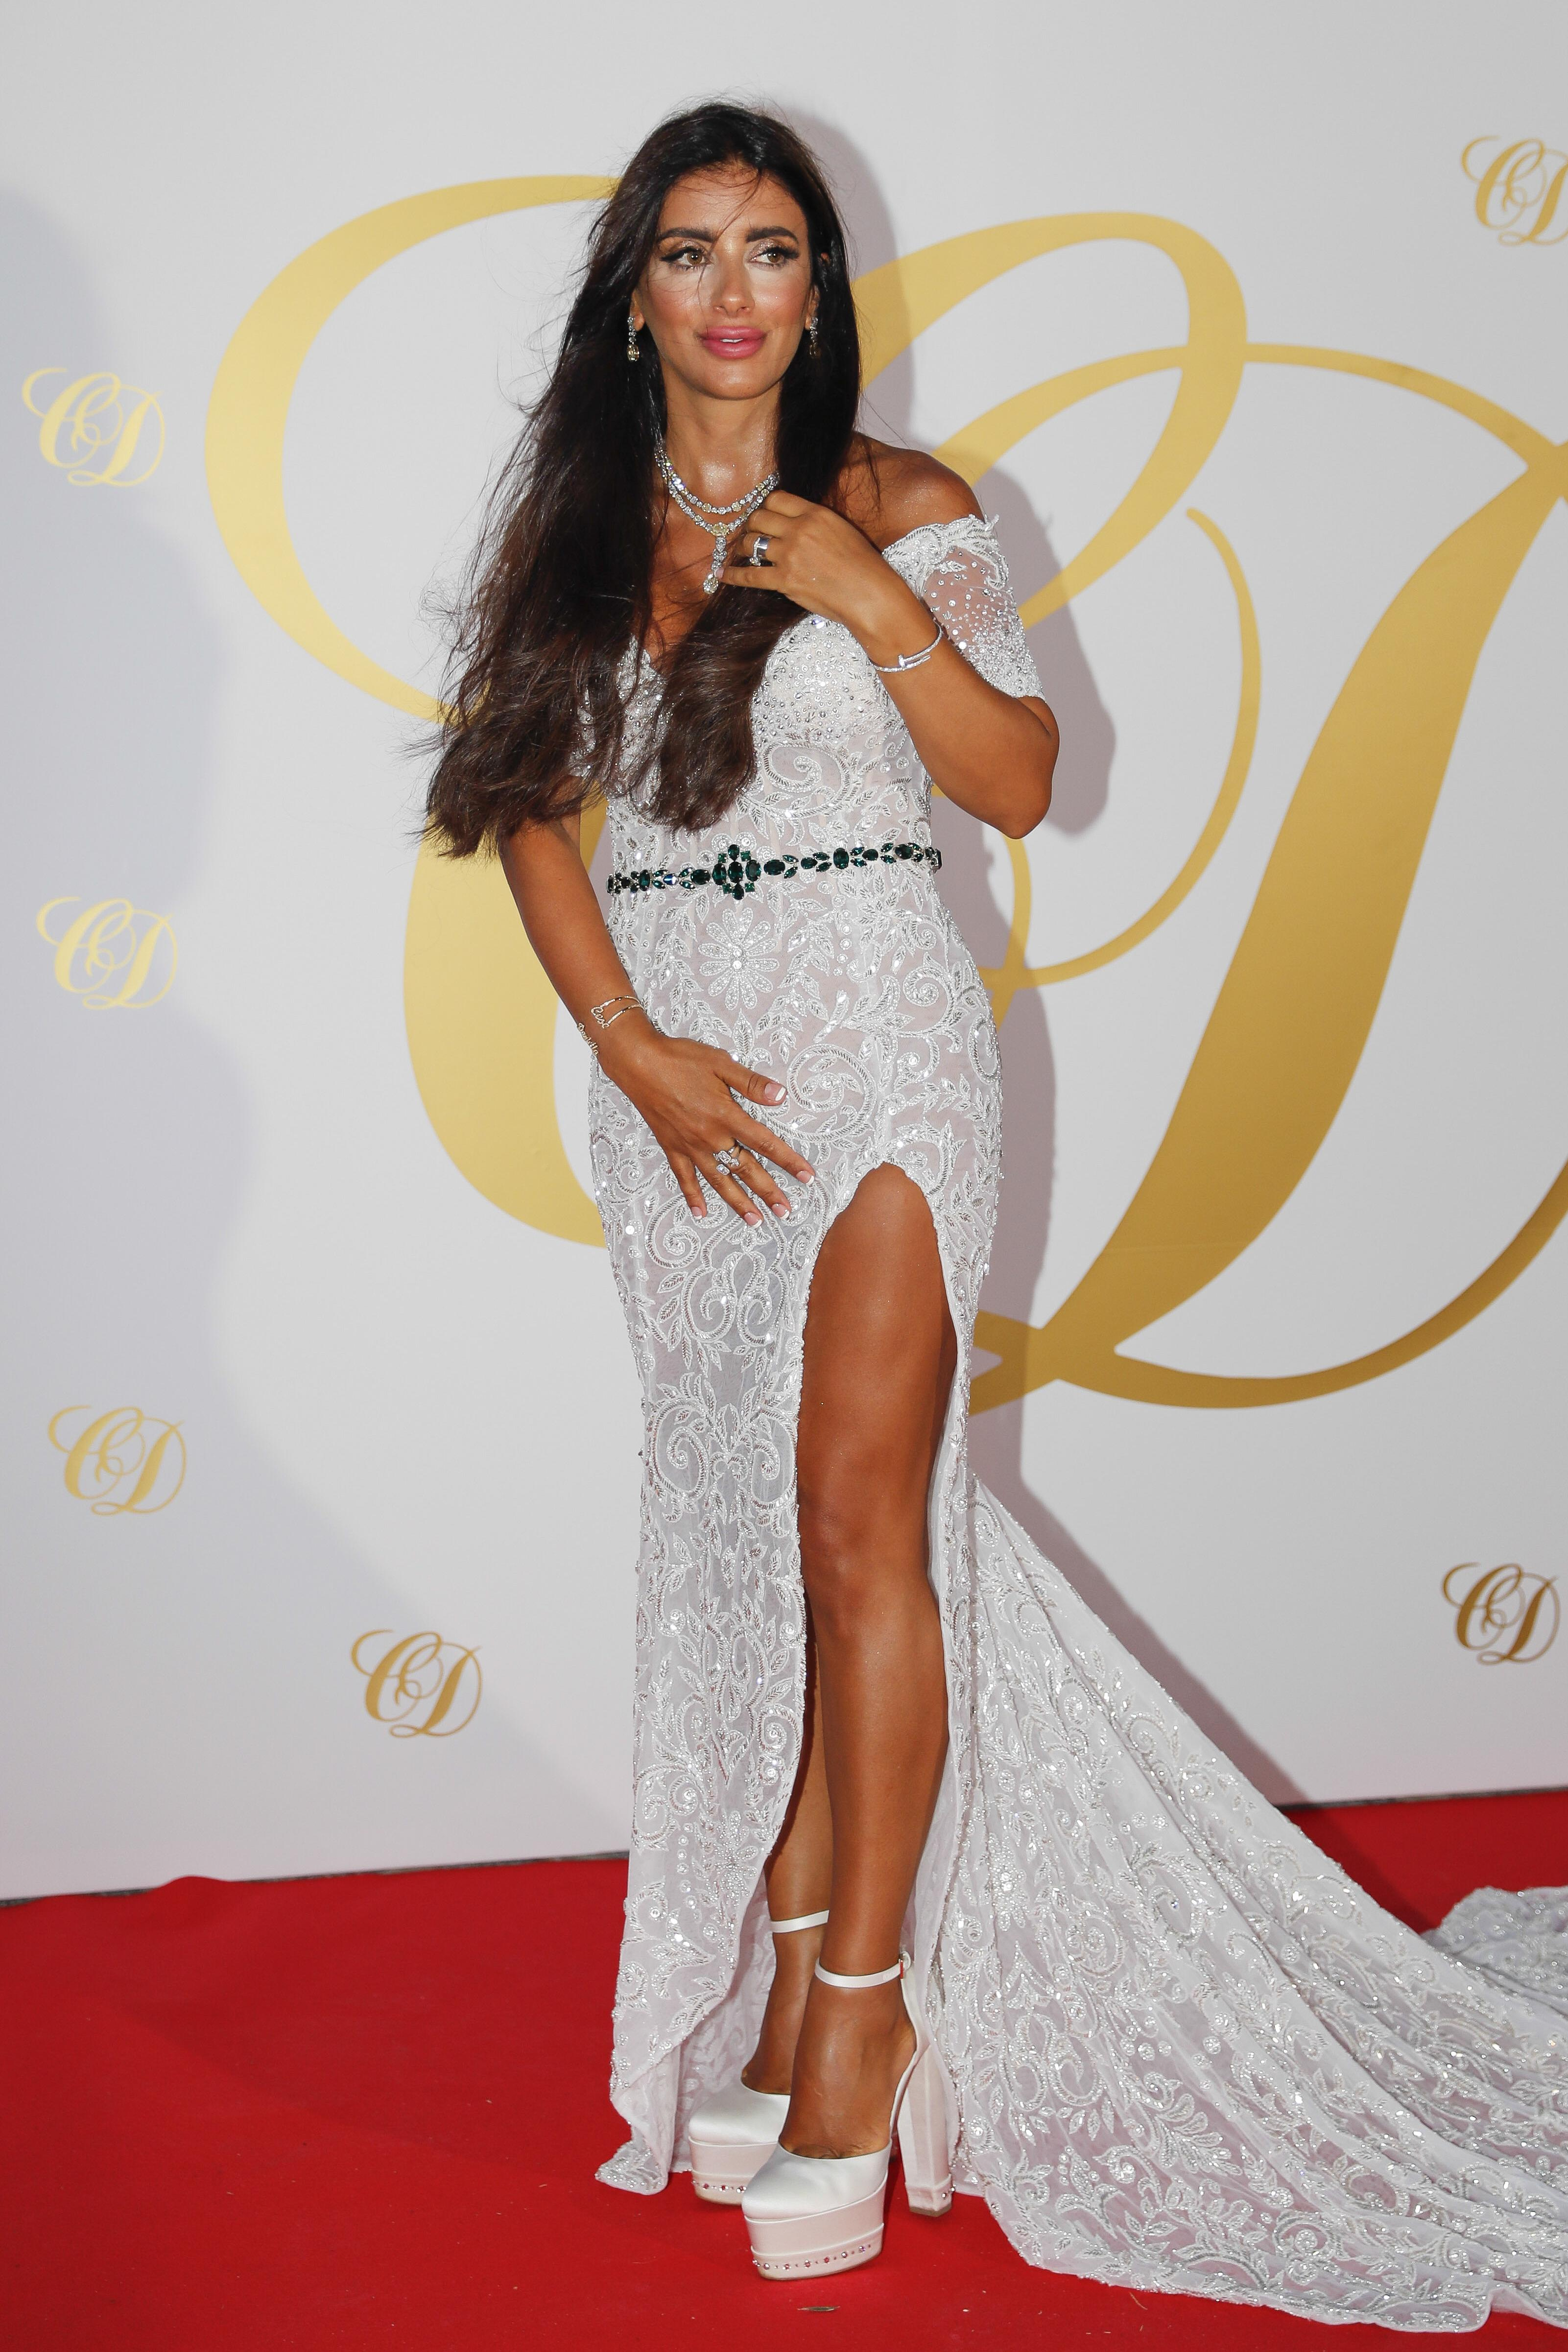 Daniella Semaan stuns on the red carpet in a long dress which shows off her leg